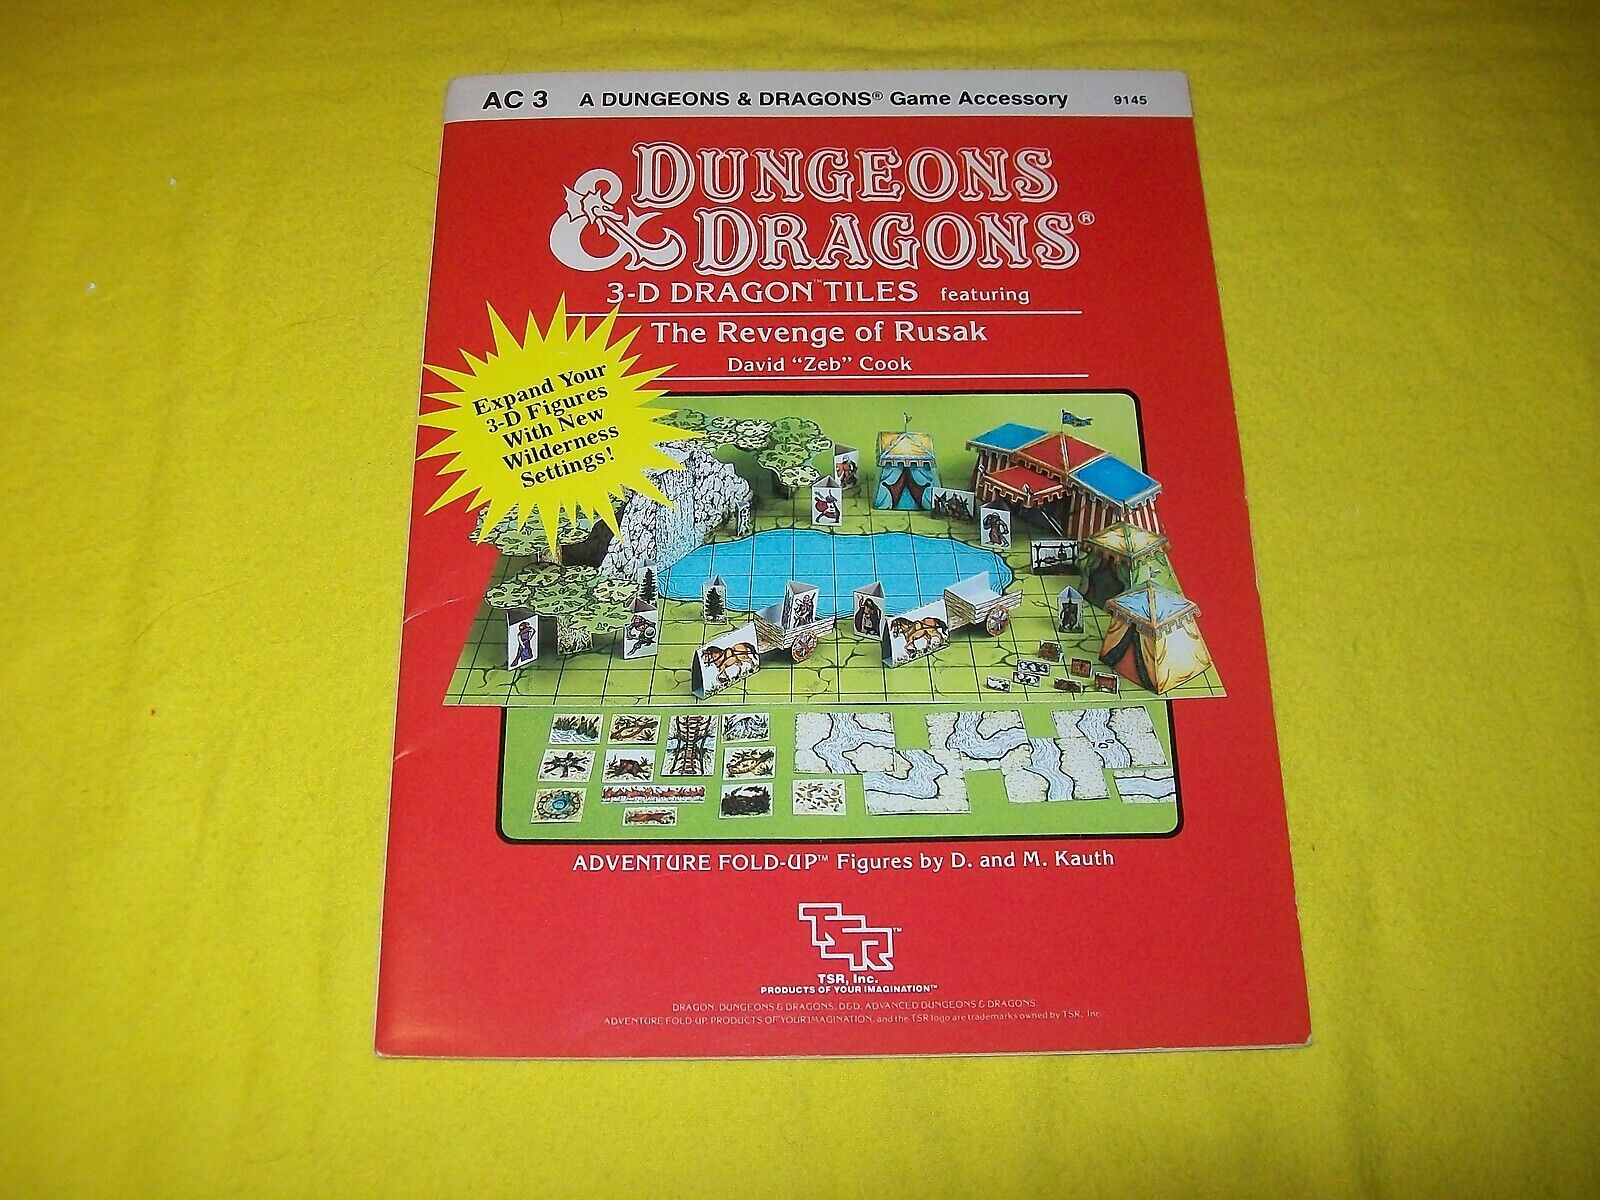 AC8 THE REVENGE OF RUSAK AC3 DUNGEONS & DRAGONS TSR 9145 - 1 MODULE